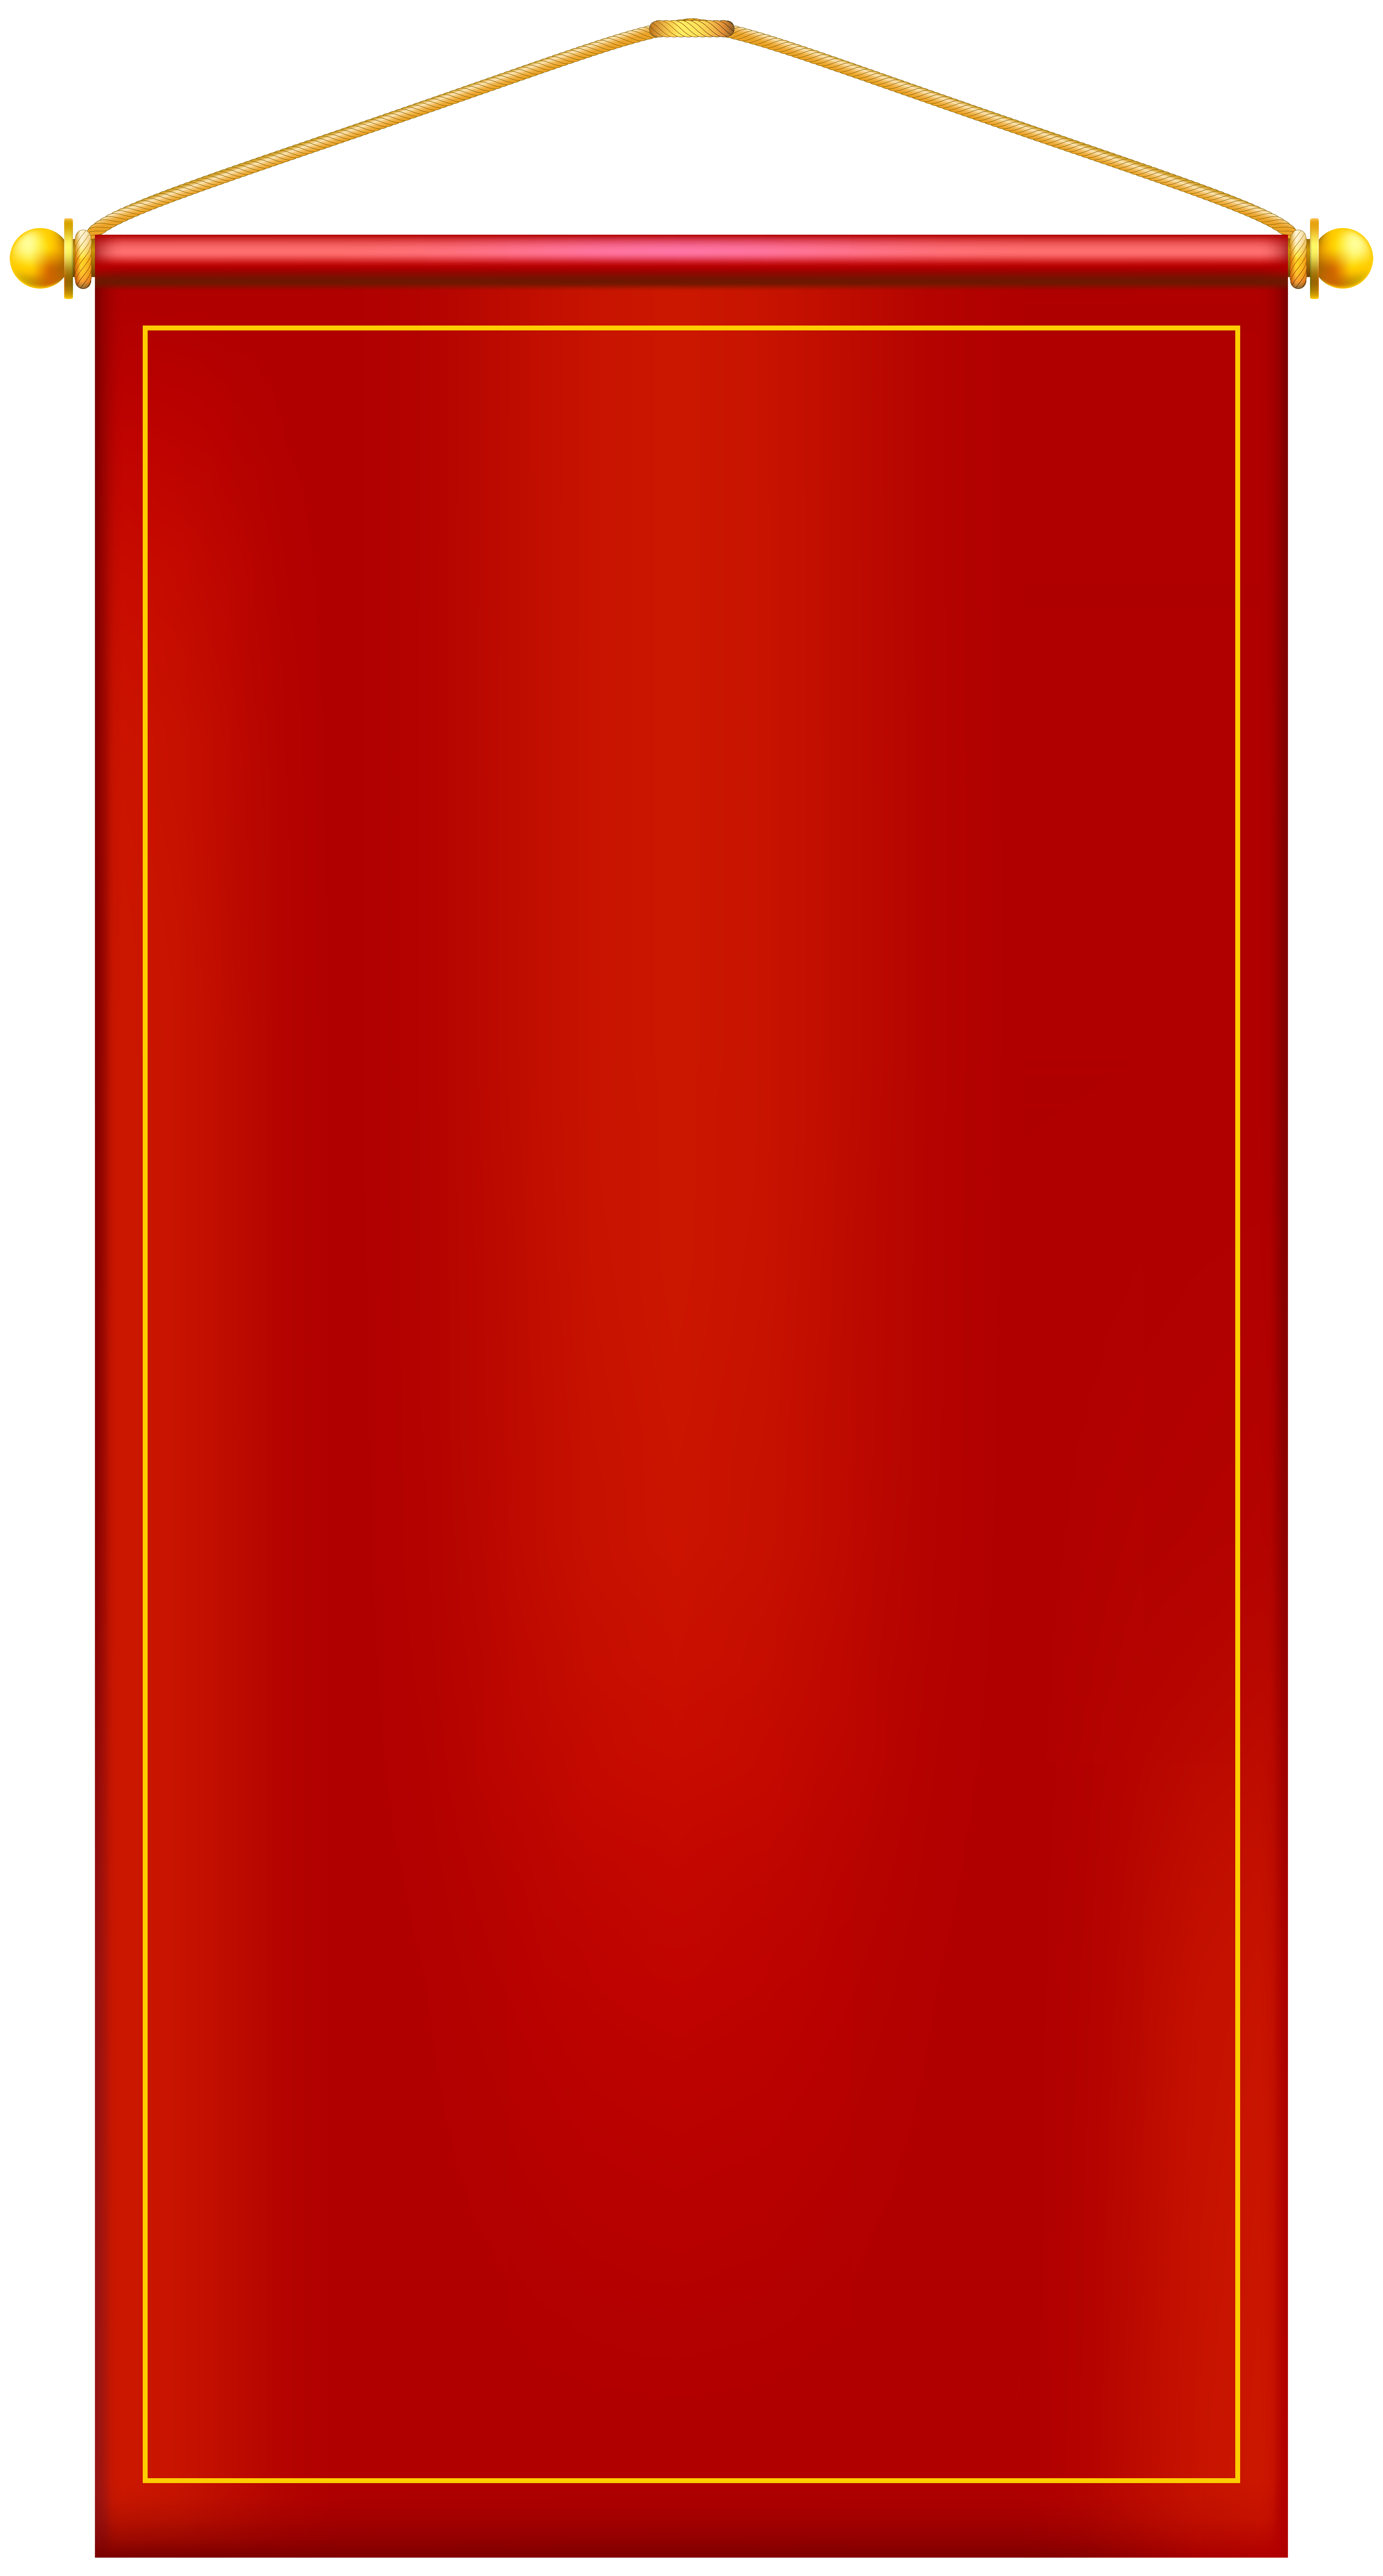 Clipart door rectangle thing. Vertical red banner png